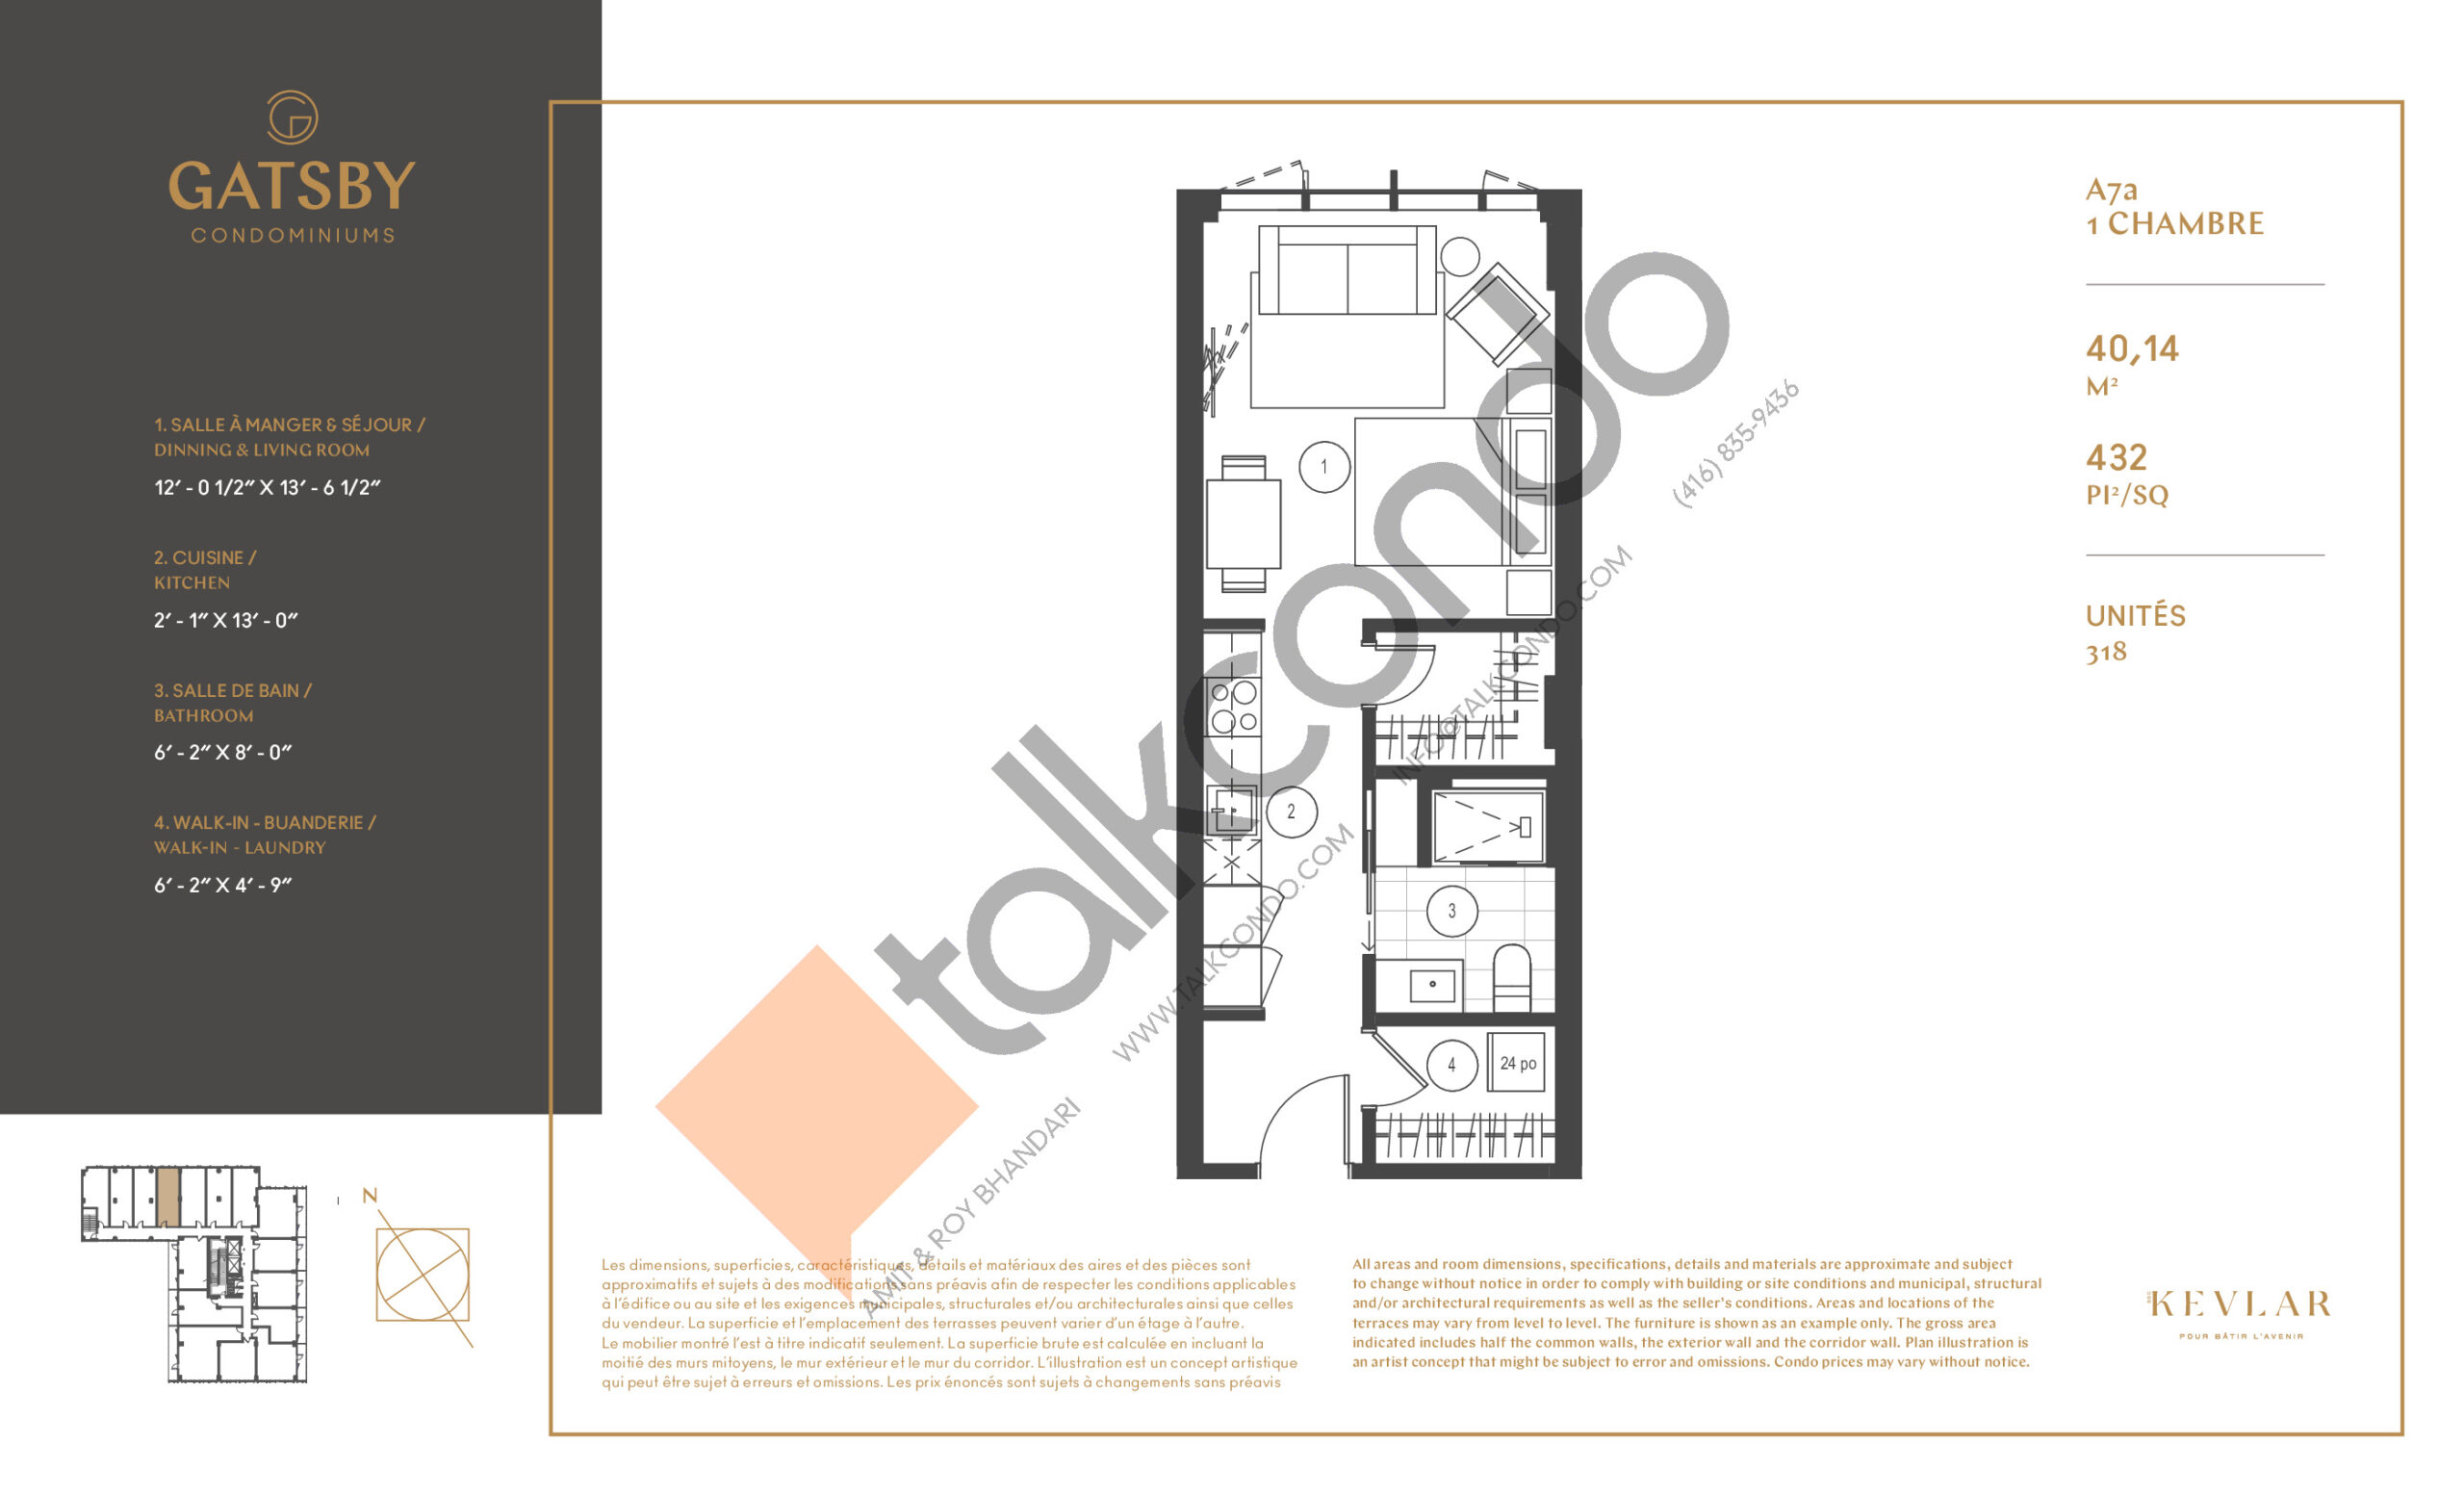 A7a Floor Plan at Gatsby Condos - 432 sq.ft